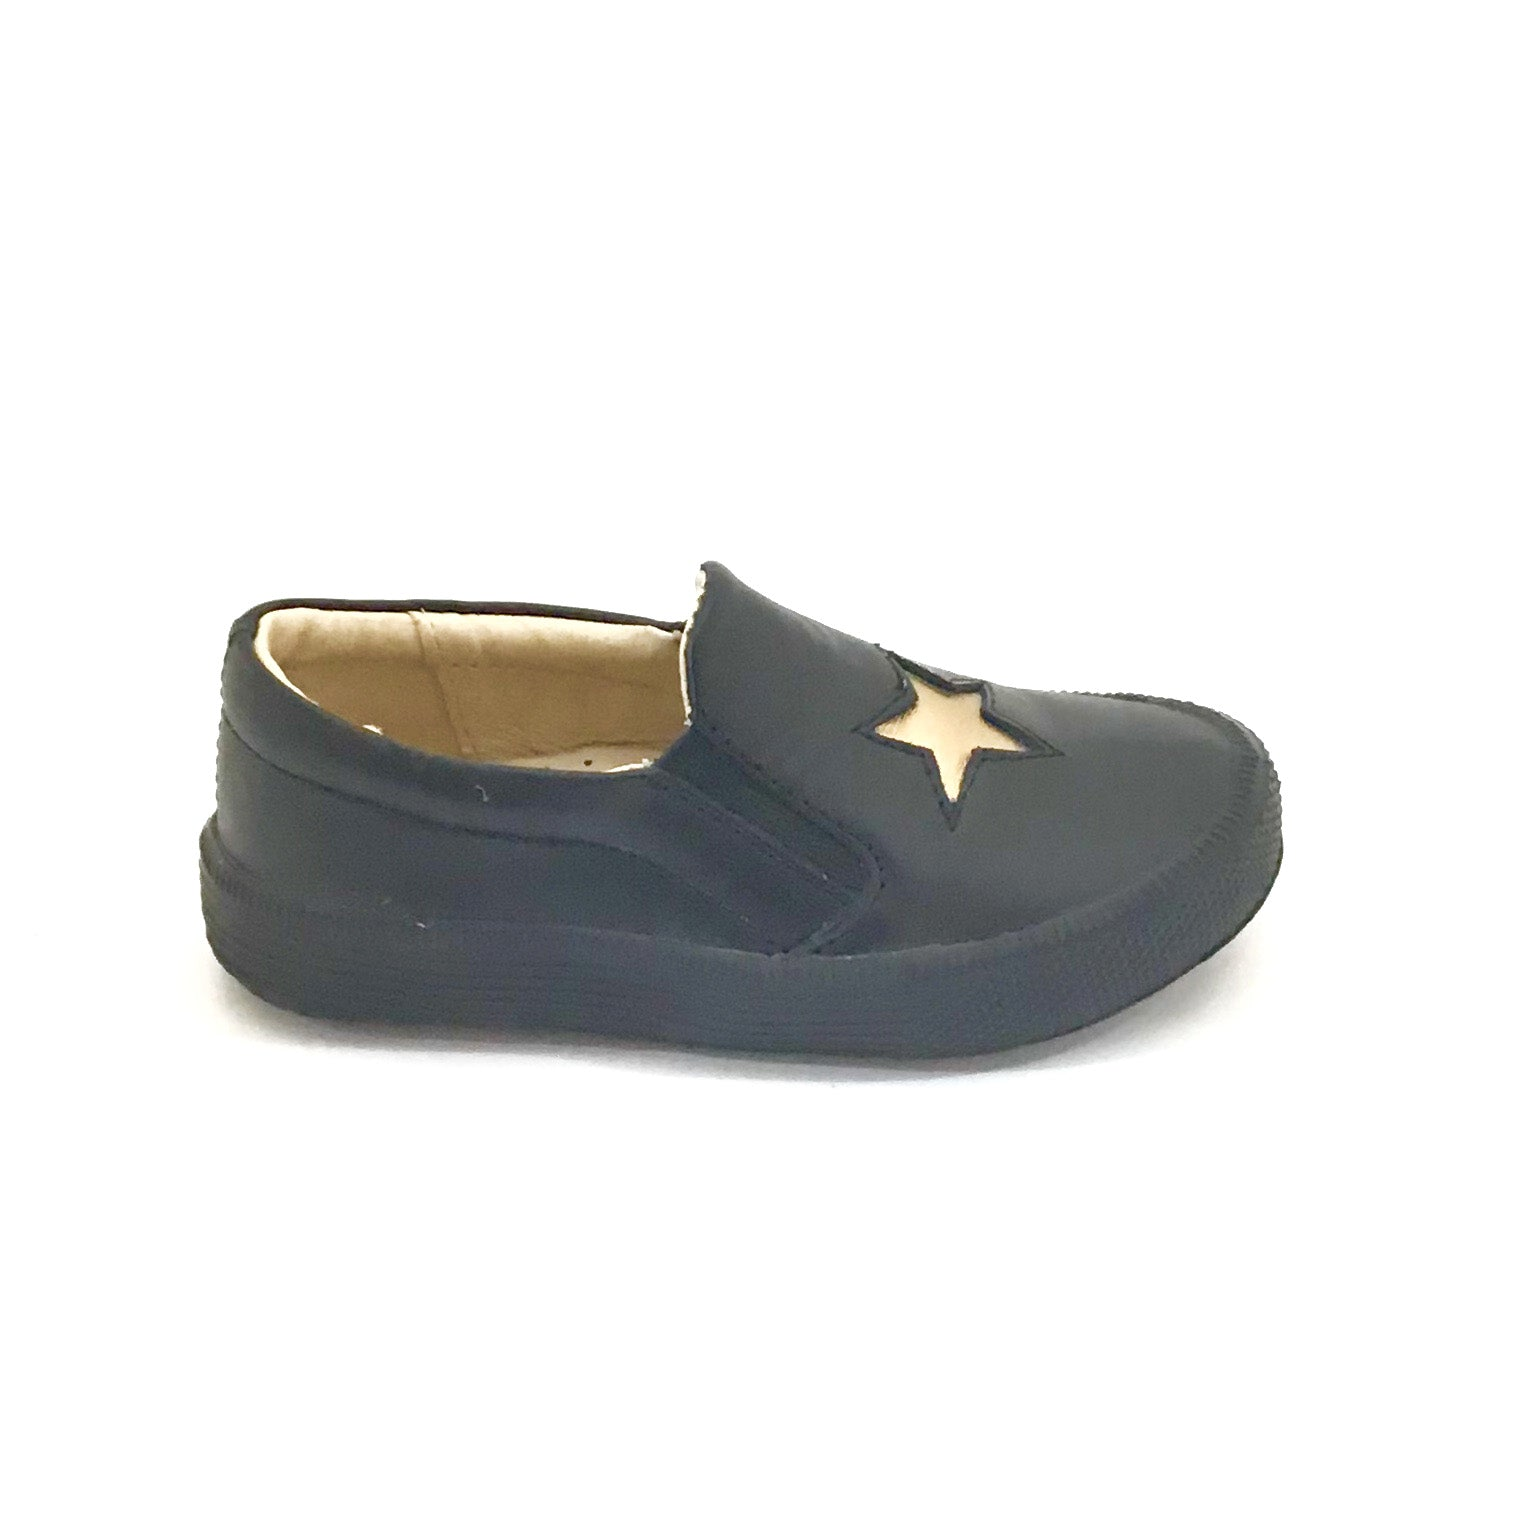 Old Soles Black Slip-on with Star